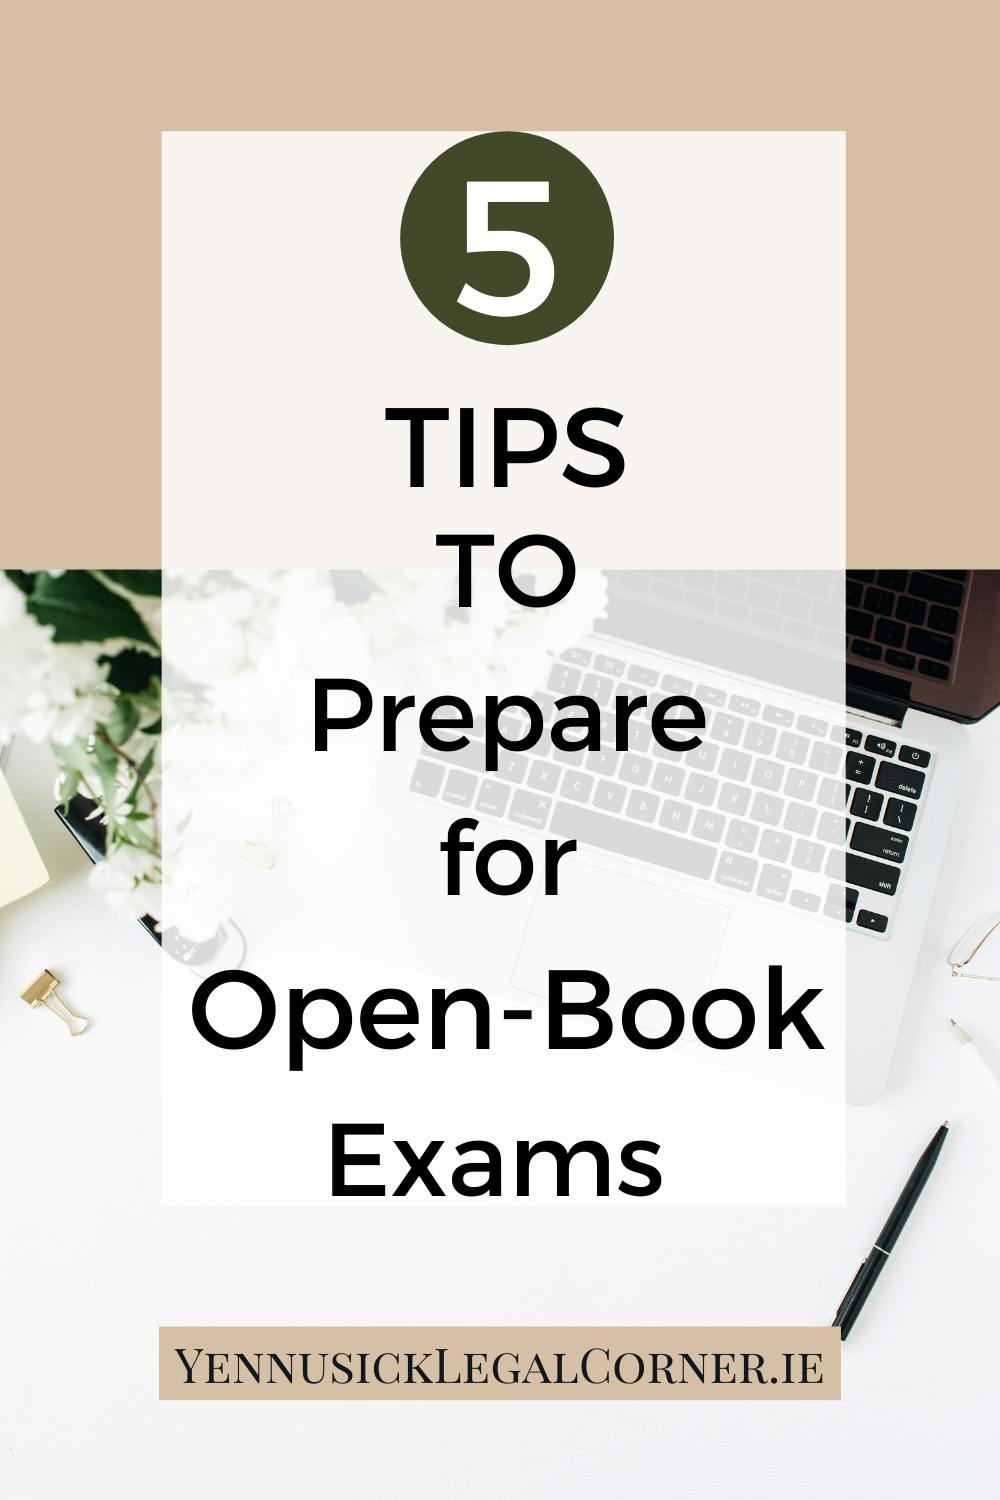 5 top tips to prepare for open-book exams MacBook on white table beside plants and stationary being background, white overlay